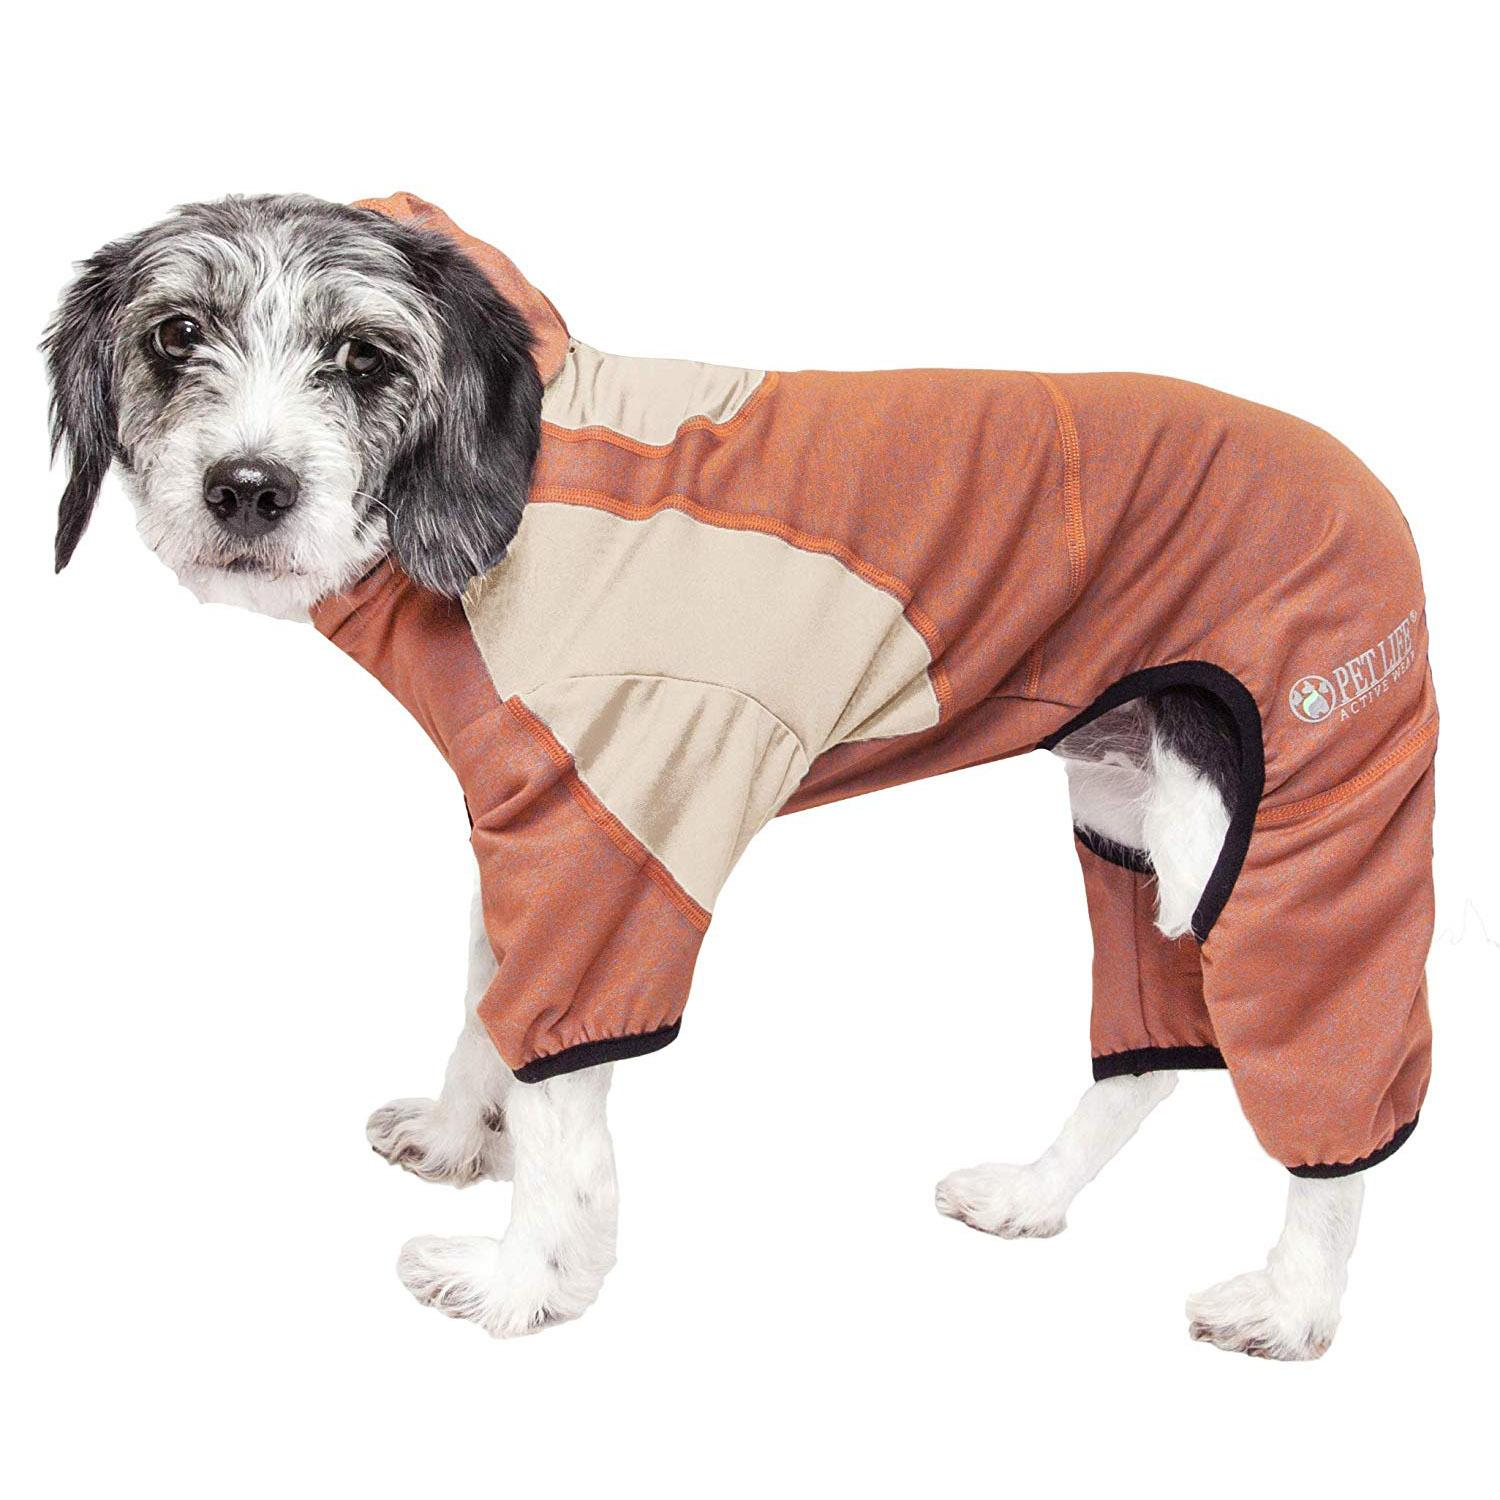 Pet Life ACTIVE 'Fur-Breeze' Performance Full Body Warm-Up Dog Hoodie - Teracotta and Tan